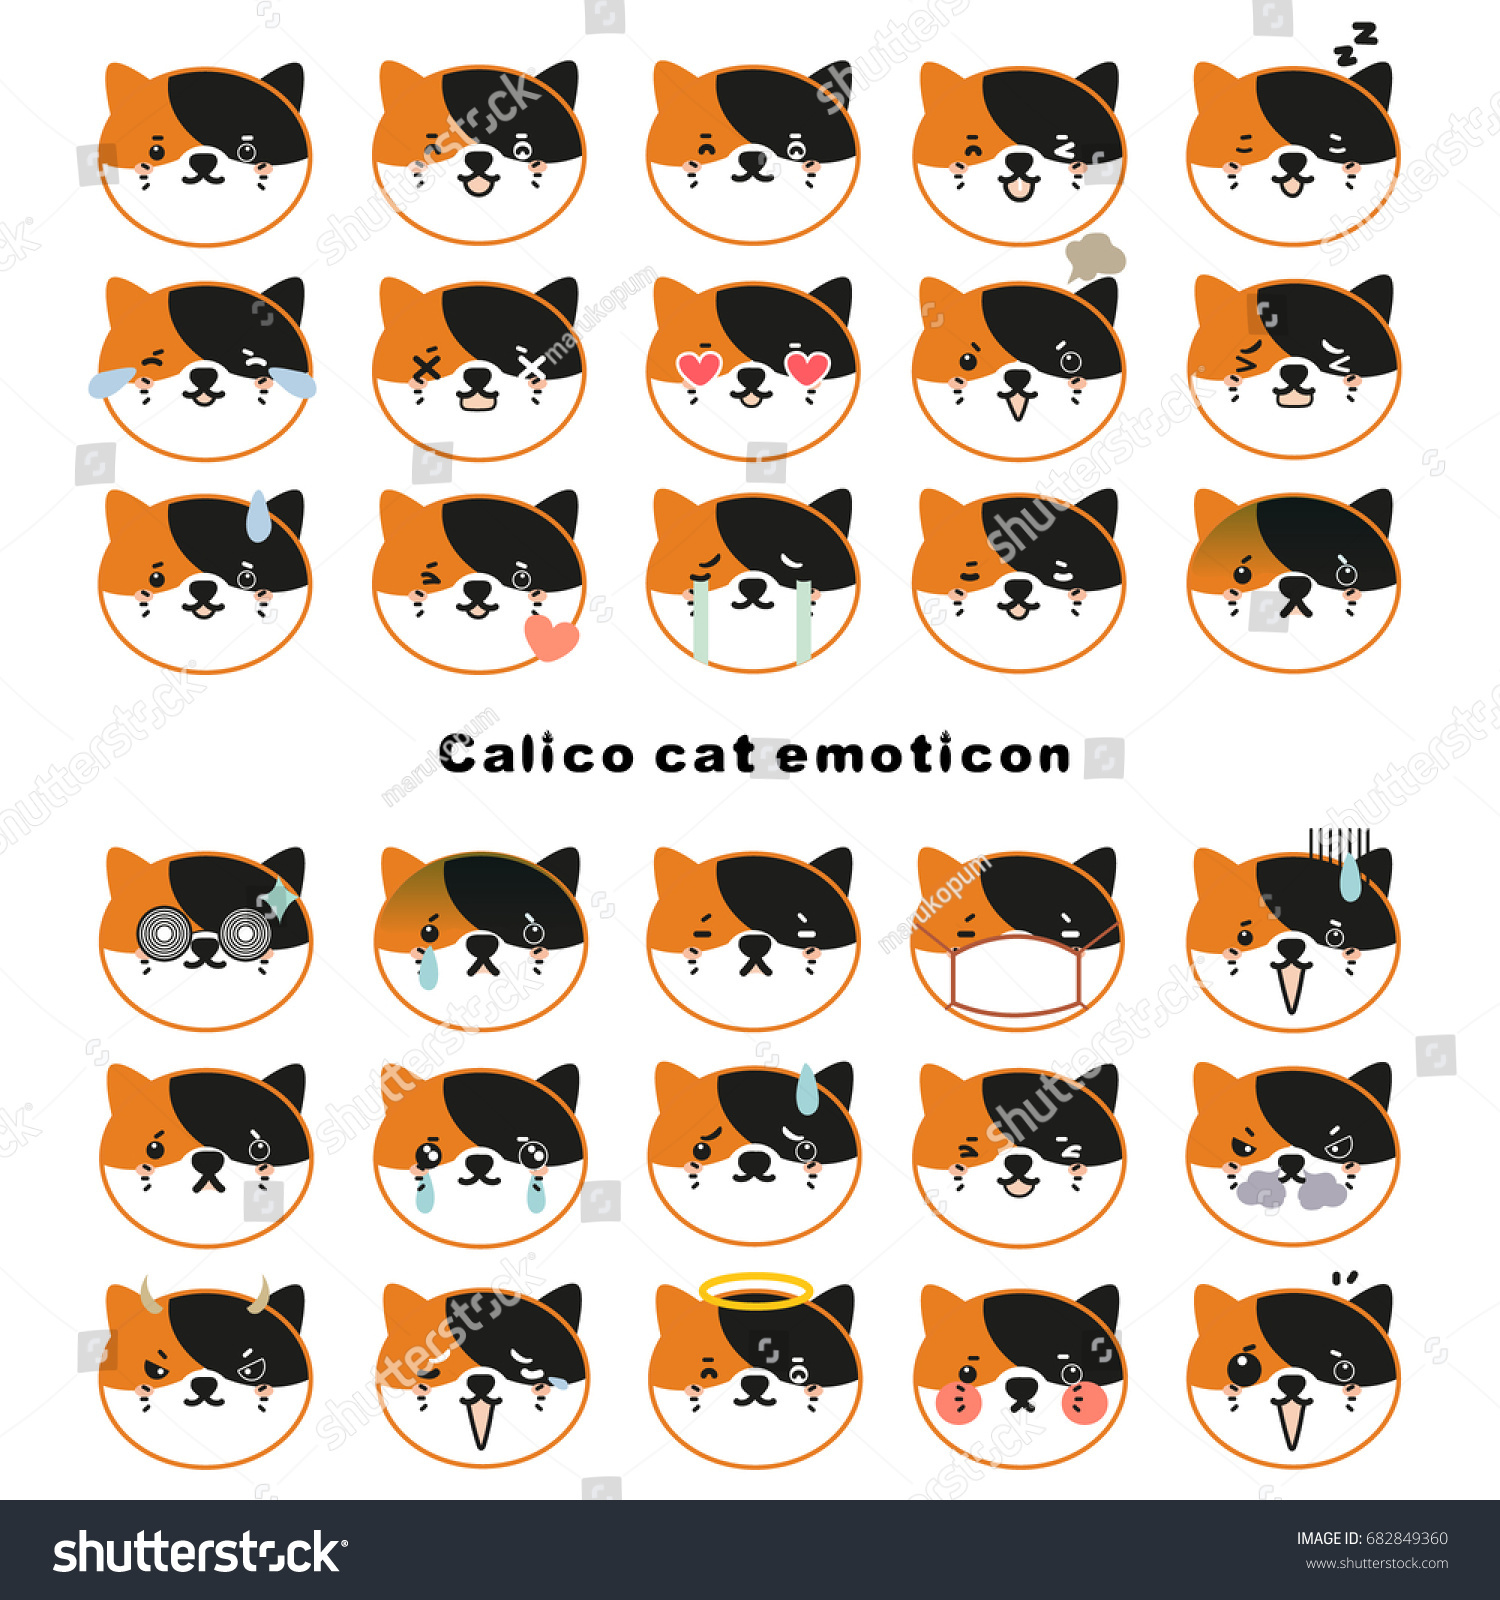 calico cat face emoticons black white stock vector